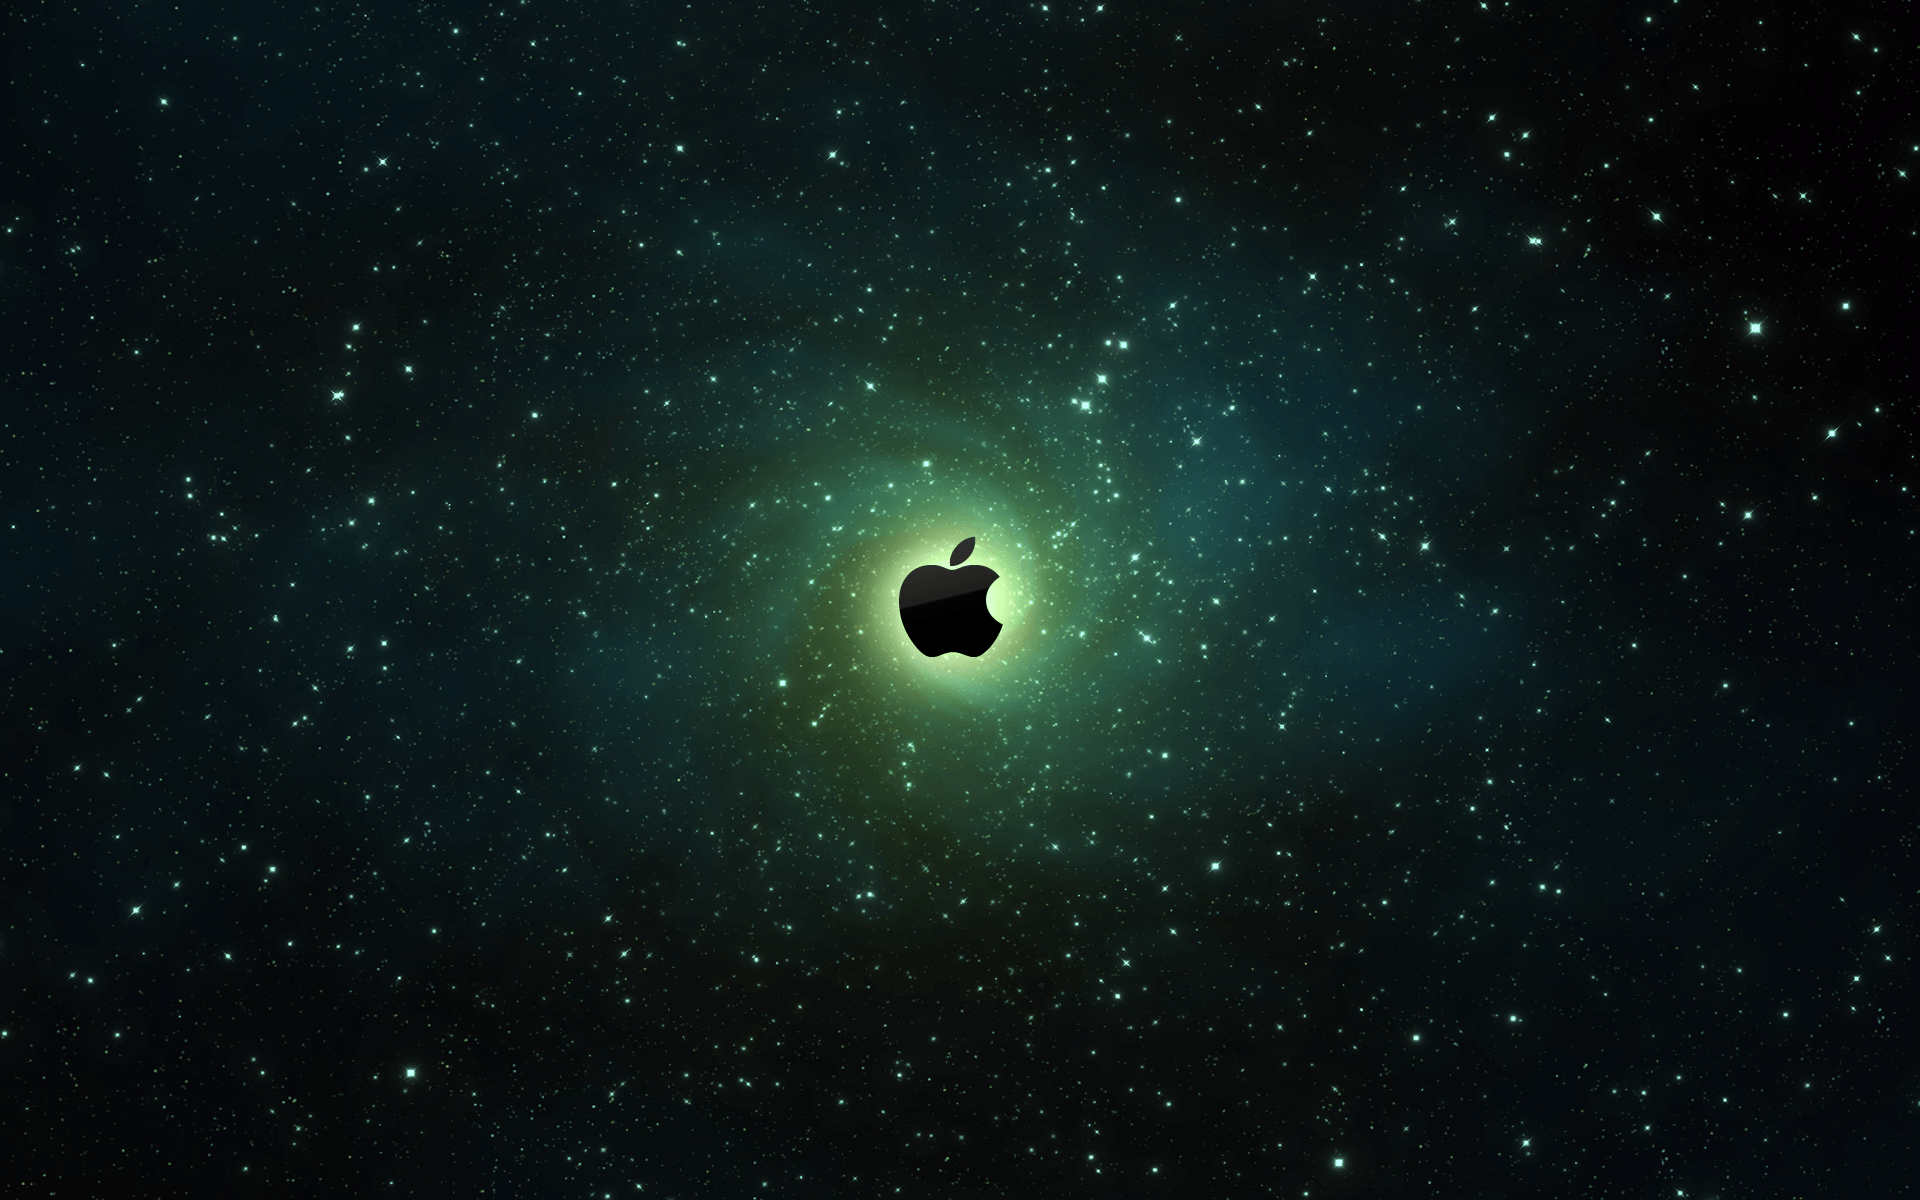 Apple 4k Ultra Hd Wallpapers Top Free Apple 4k Ultra Hd Backgrounds Wallpaperaccess